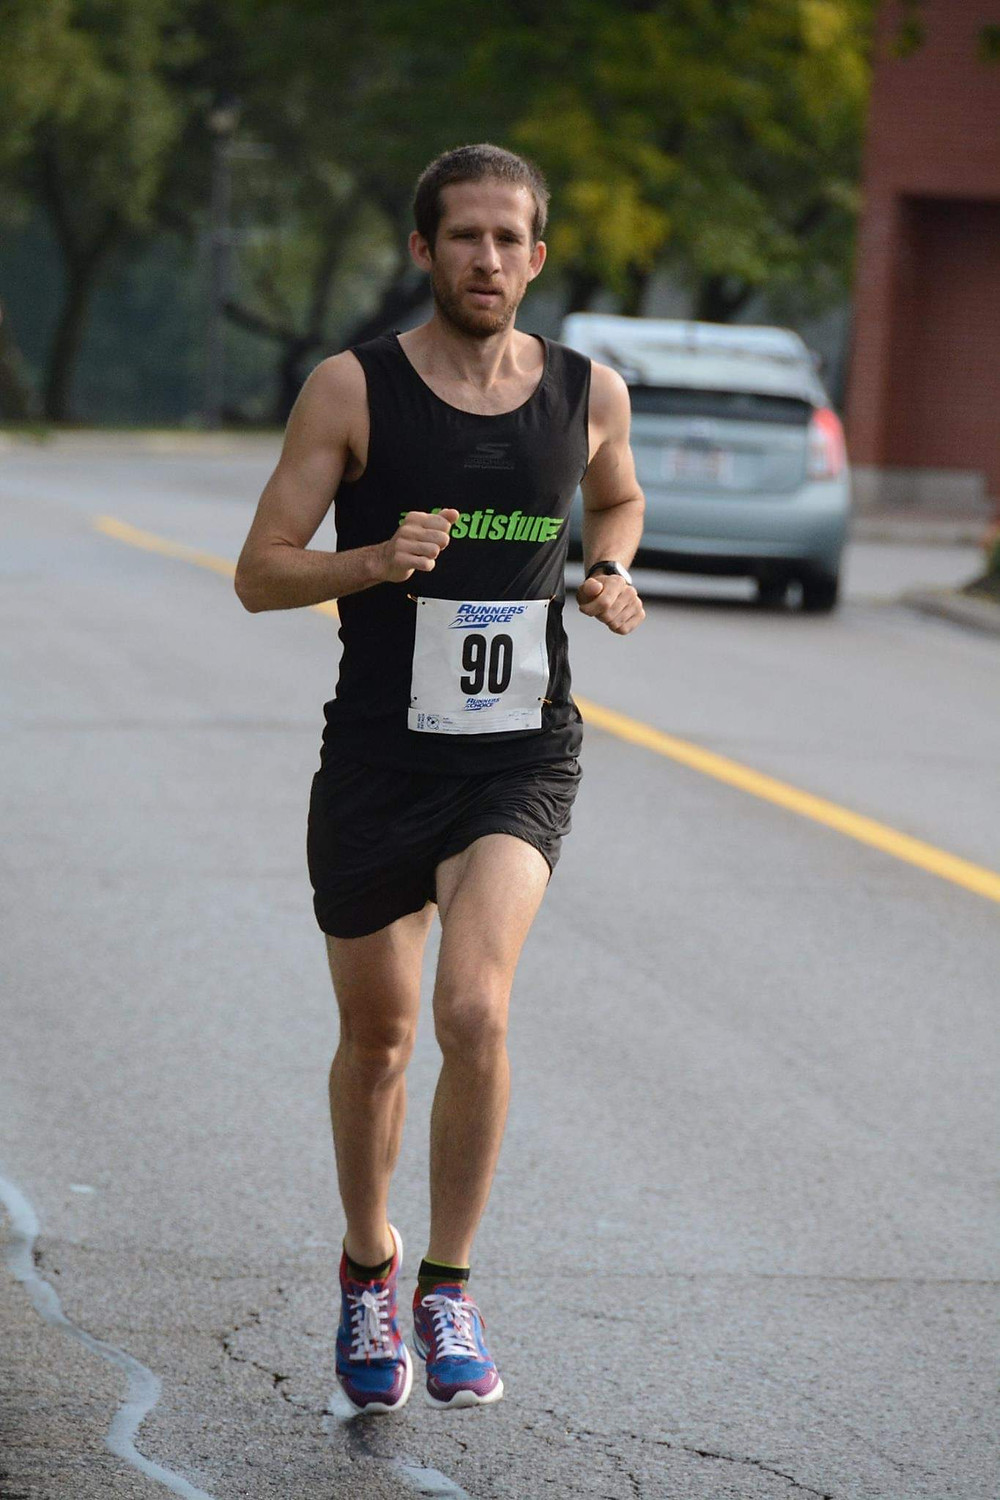 Adam Hortian is a runner and massage therapist in the Kitchener-Waterloo area